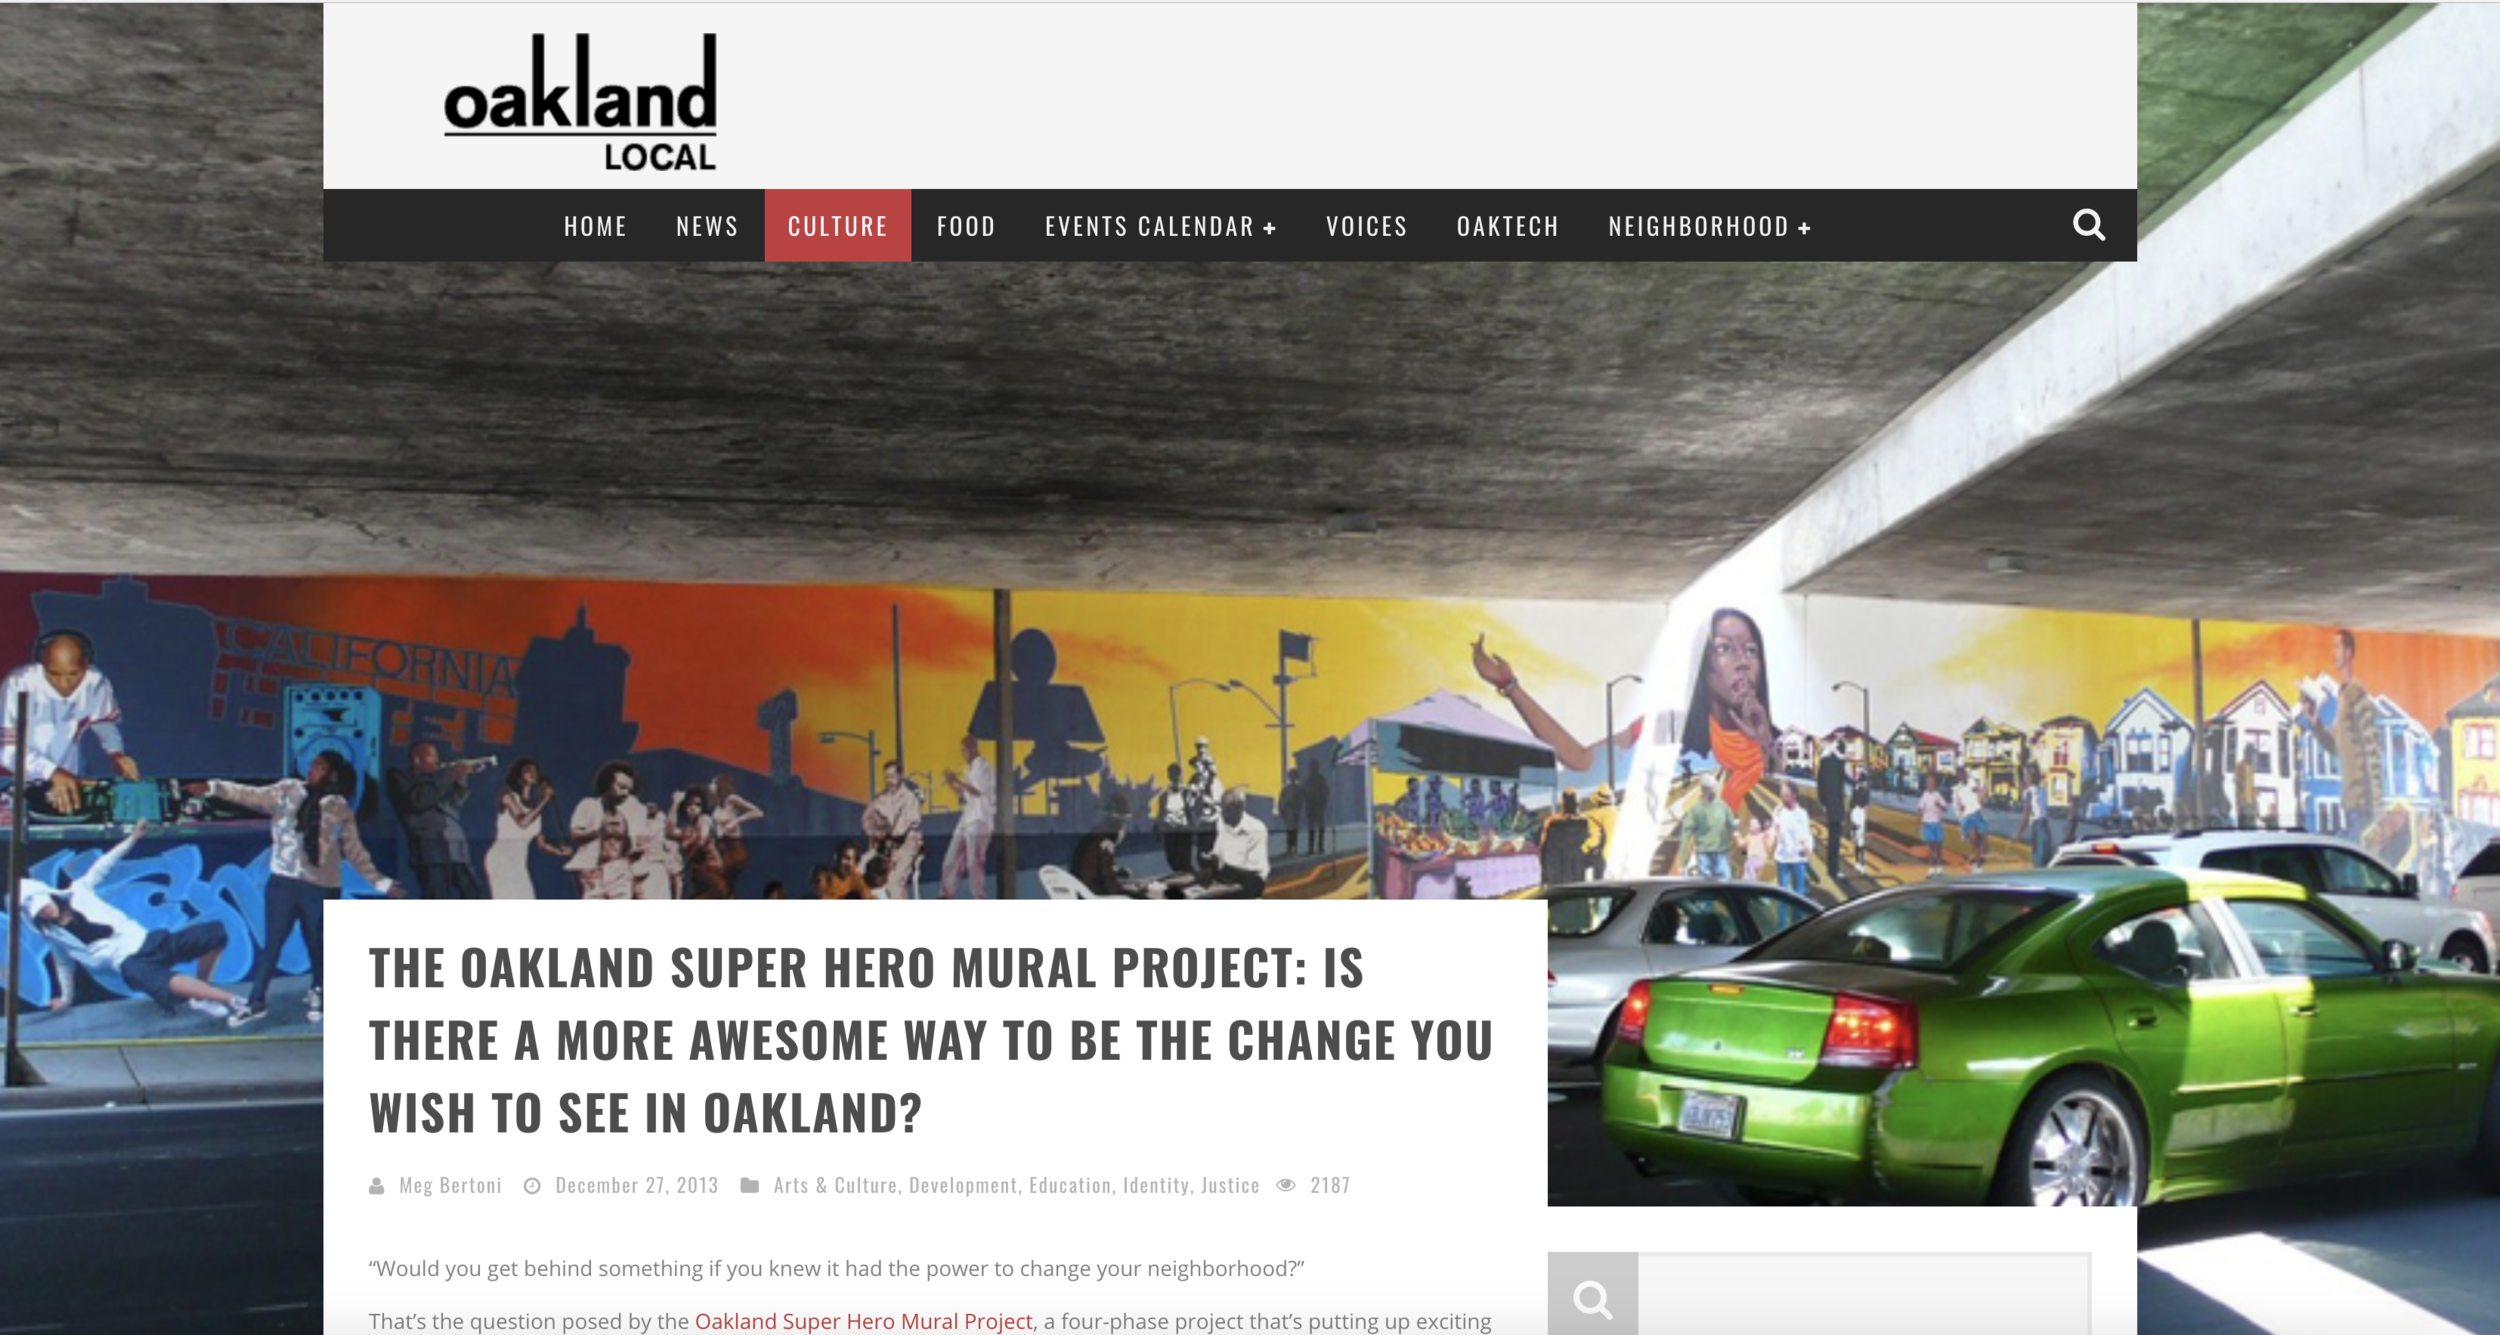 """Oakland Local Op-Ed - """"Would you get behind something if you knew it had the power to change your neighborhood?That's the question posed by the Oakland Super Hero Mural Project, a four-phase project that's putting up exciting murals along the West Oakland / Emeryville border. The first mural, under the 580 freeway along San Pablo Avenue between 35th and 36th Streets, is already up."""